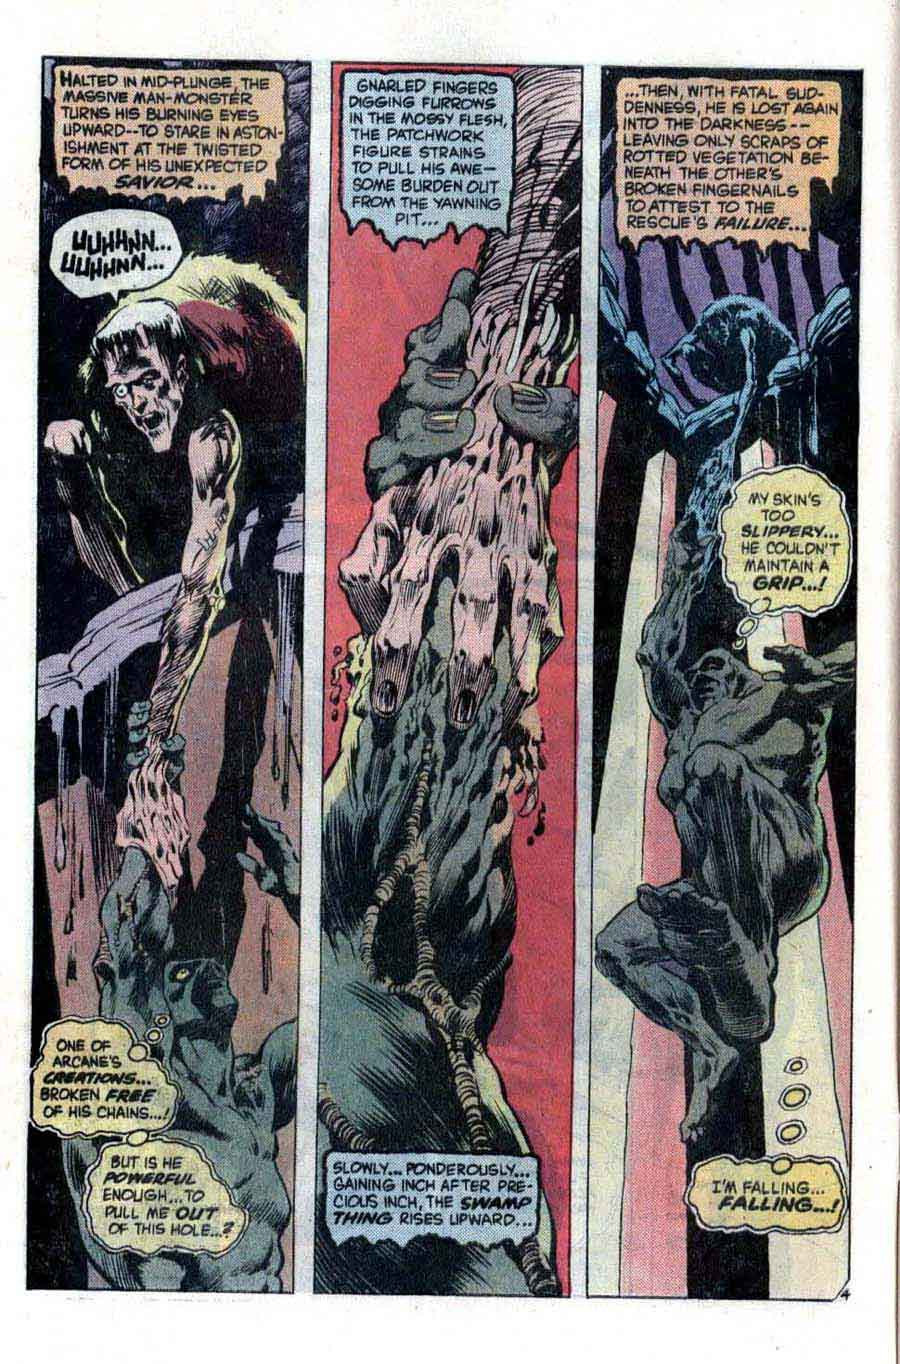 Swamp Thing v1 #3 1970s bronze age dc comic book page art by Bernie Wrightson